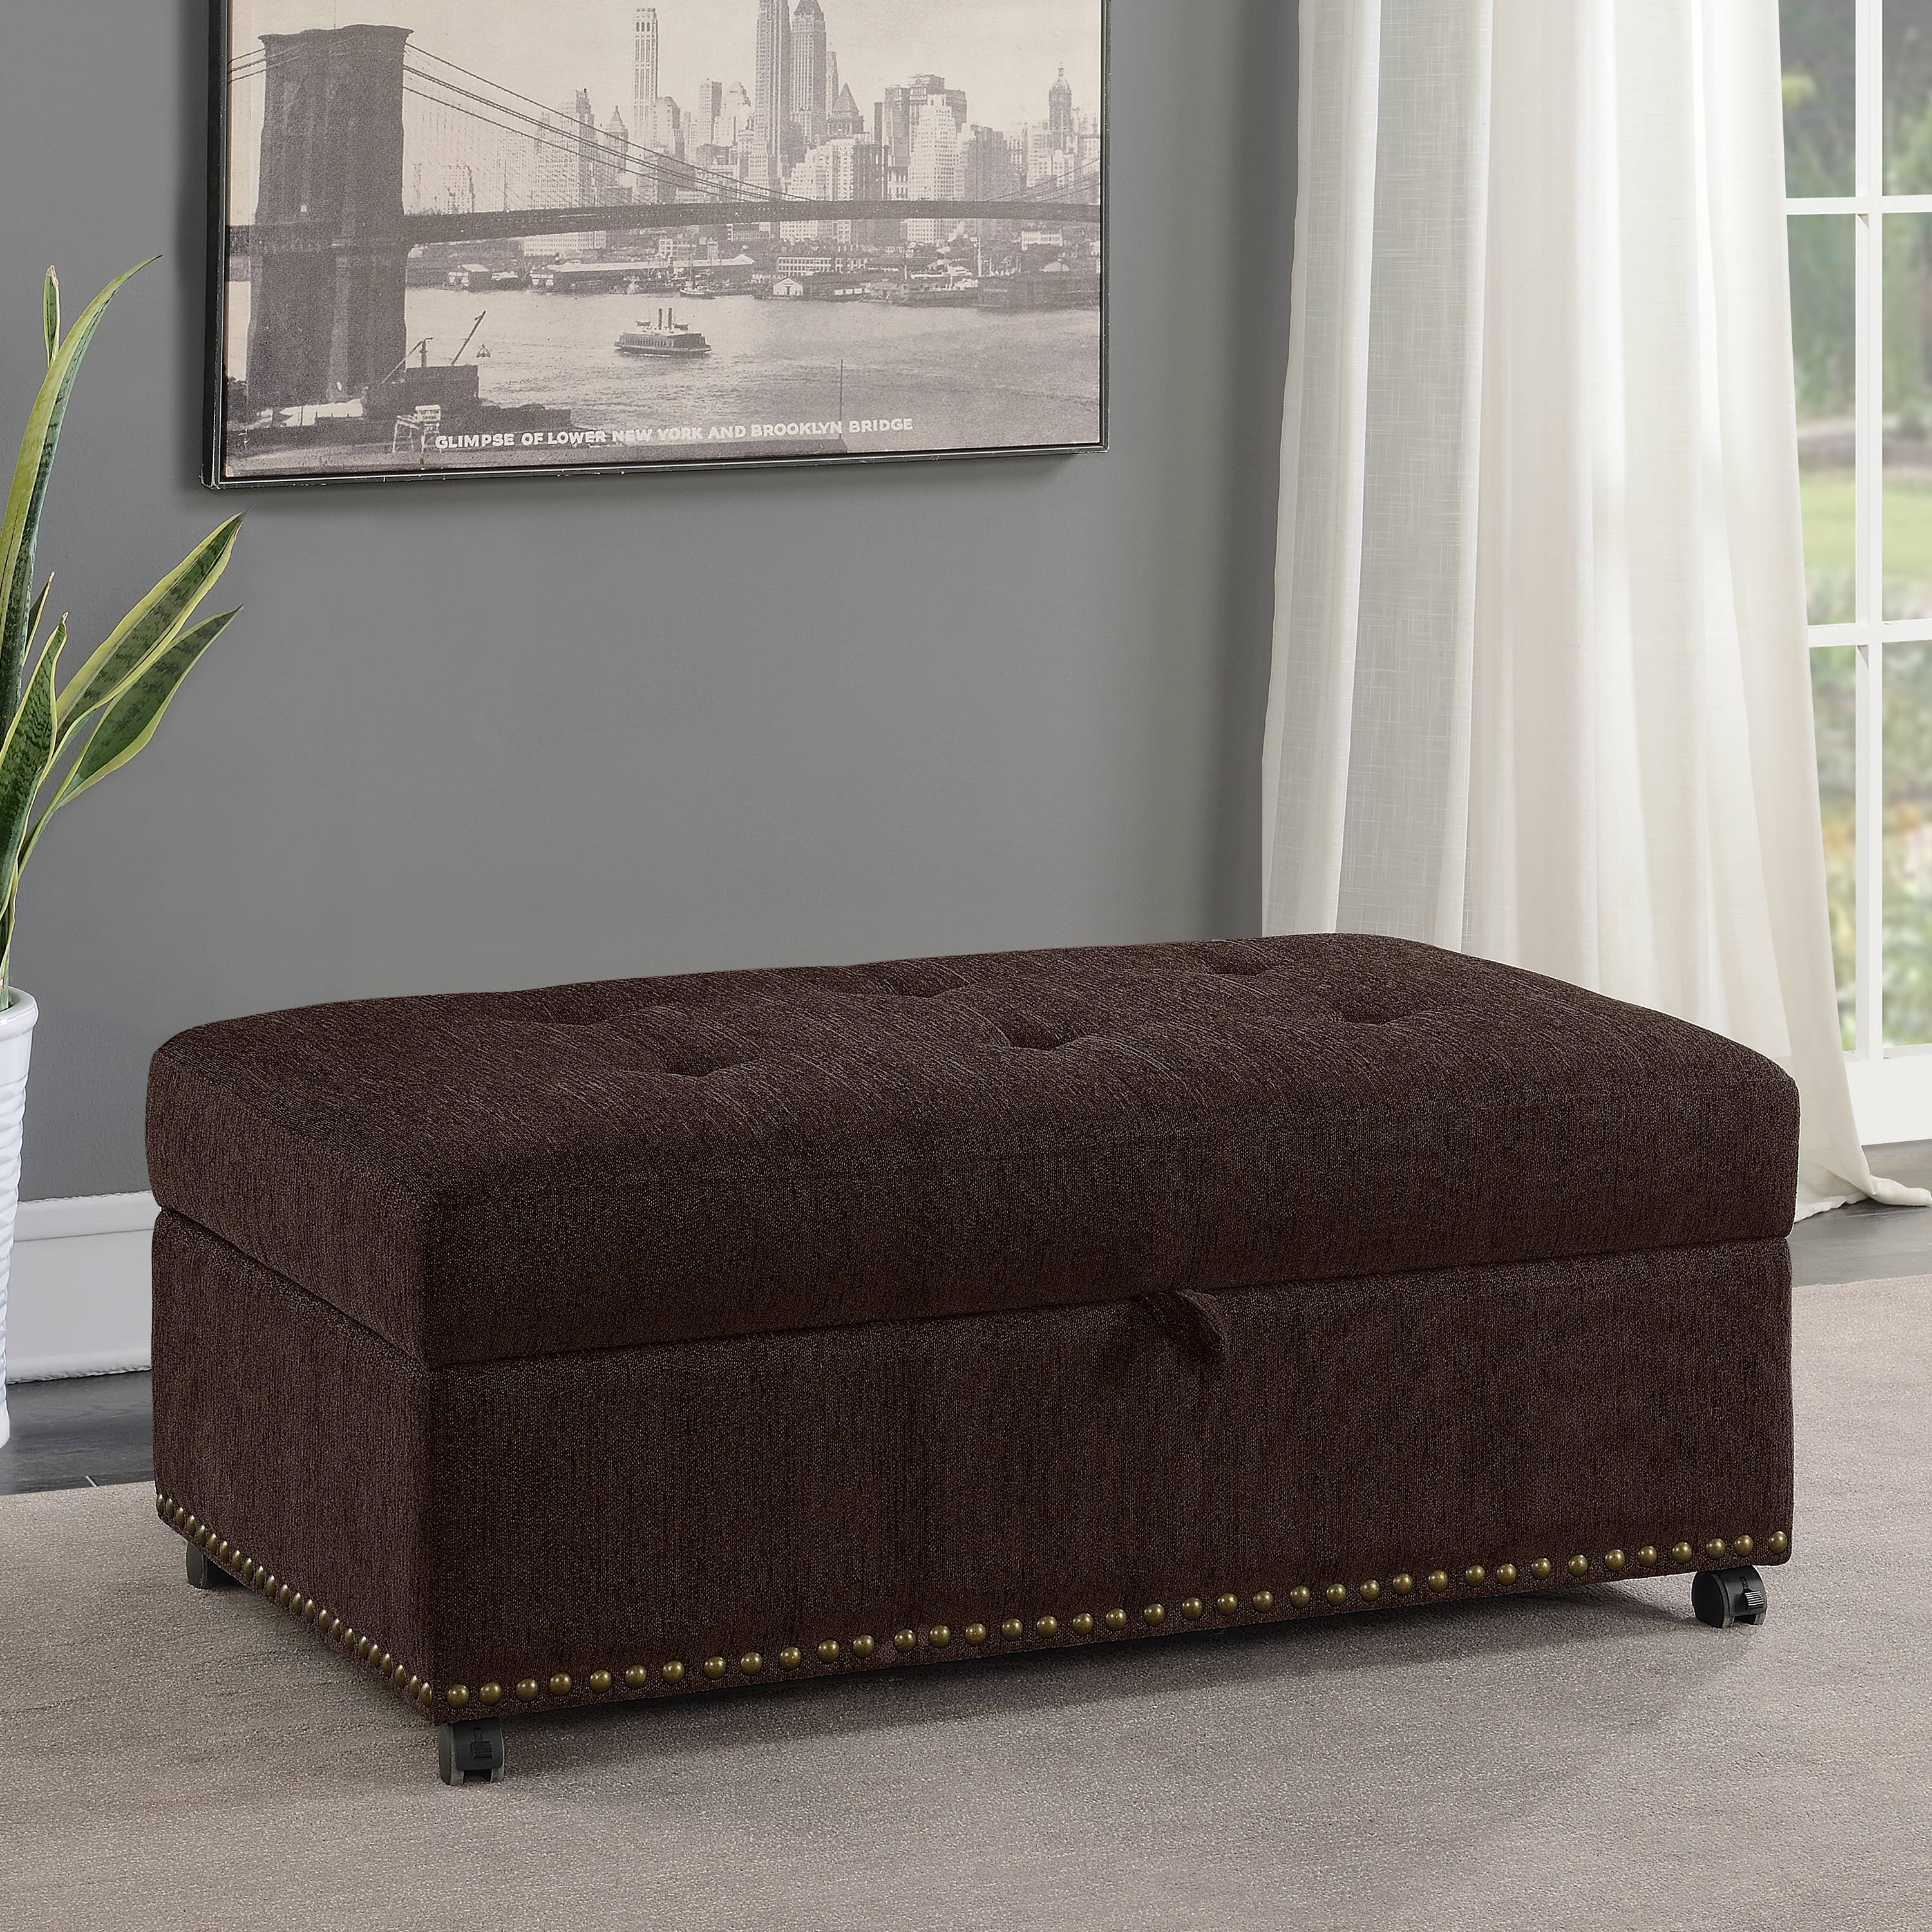 Mainstays Pull Out Sleeper Ottoman